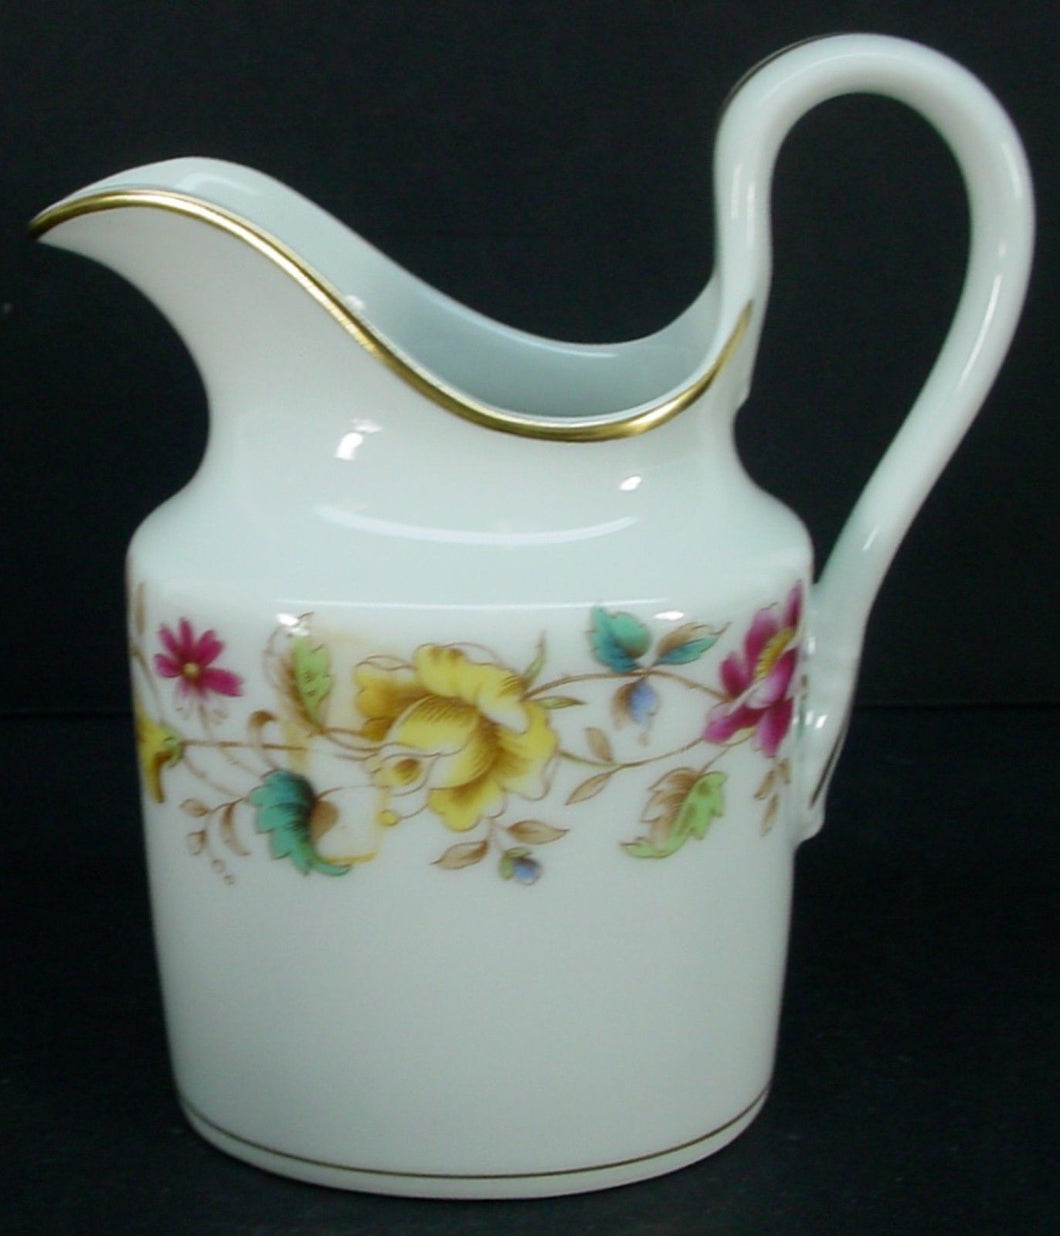 GINORI Richard china SORRENTO pattern CREAMER cream pitcher JUG 3-1/2